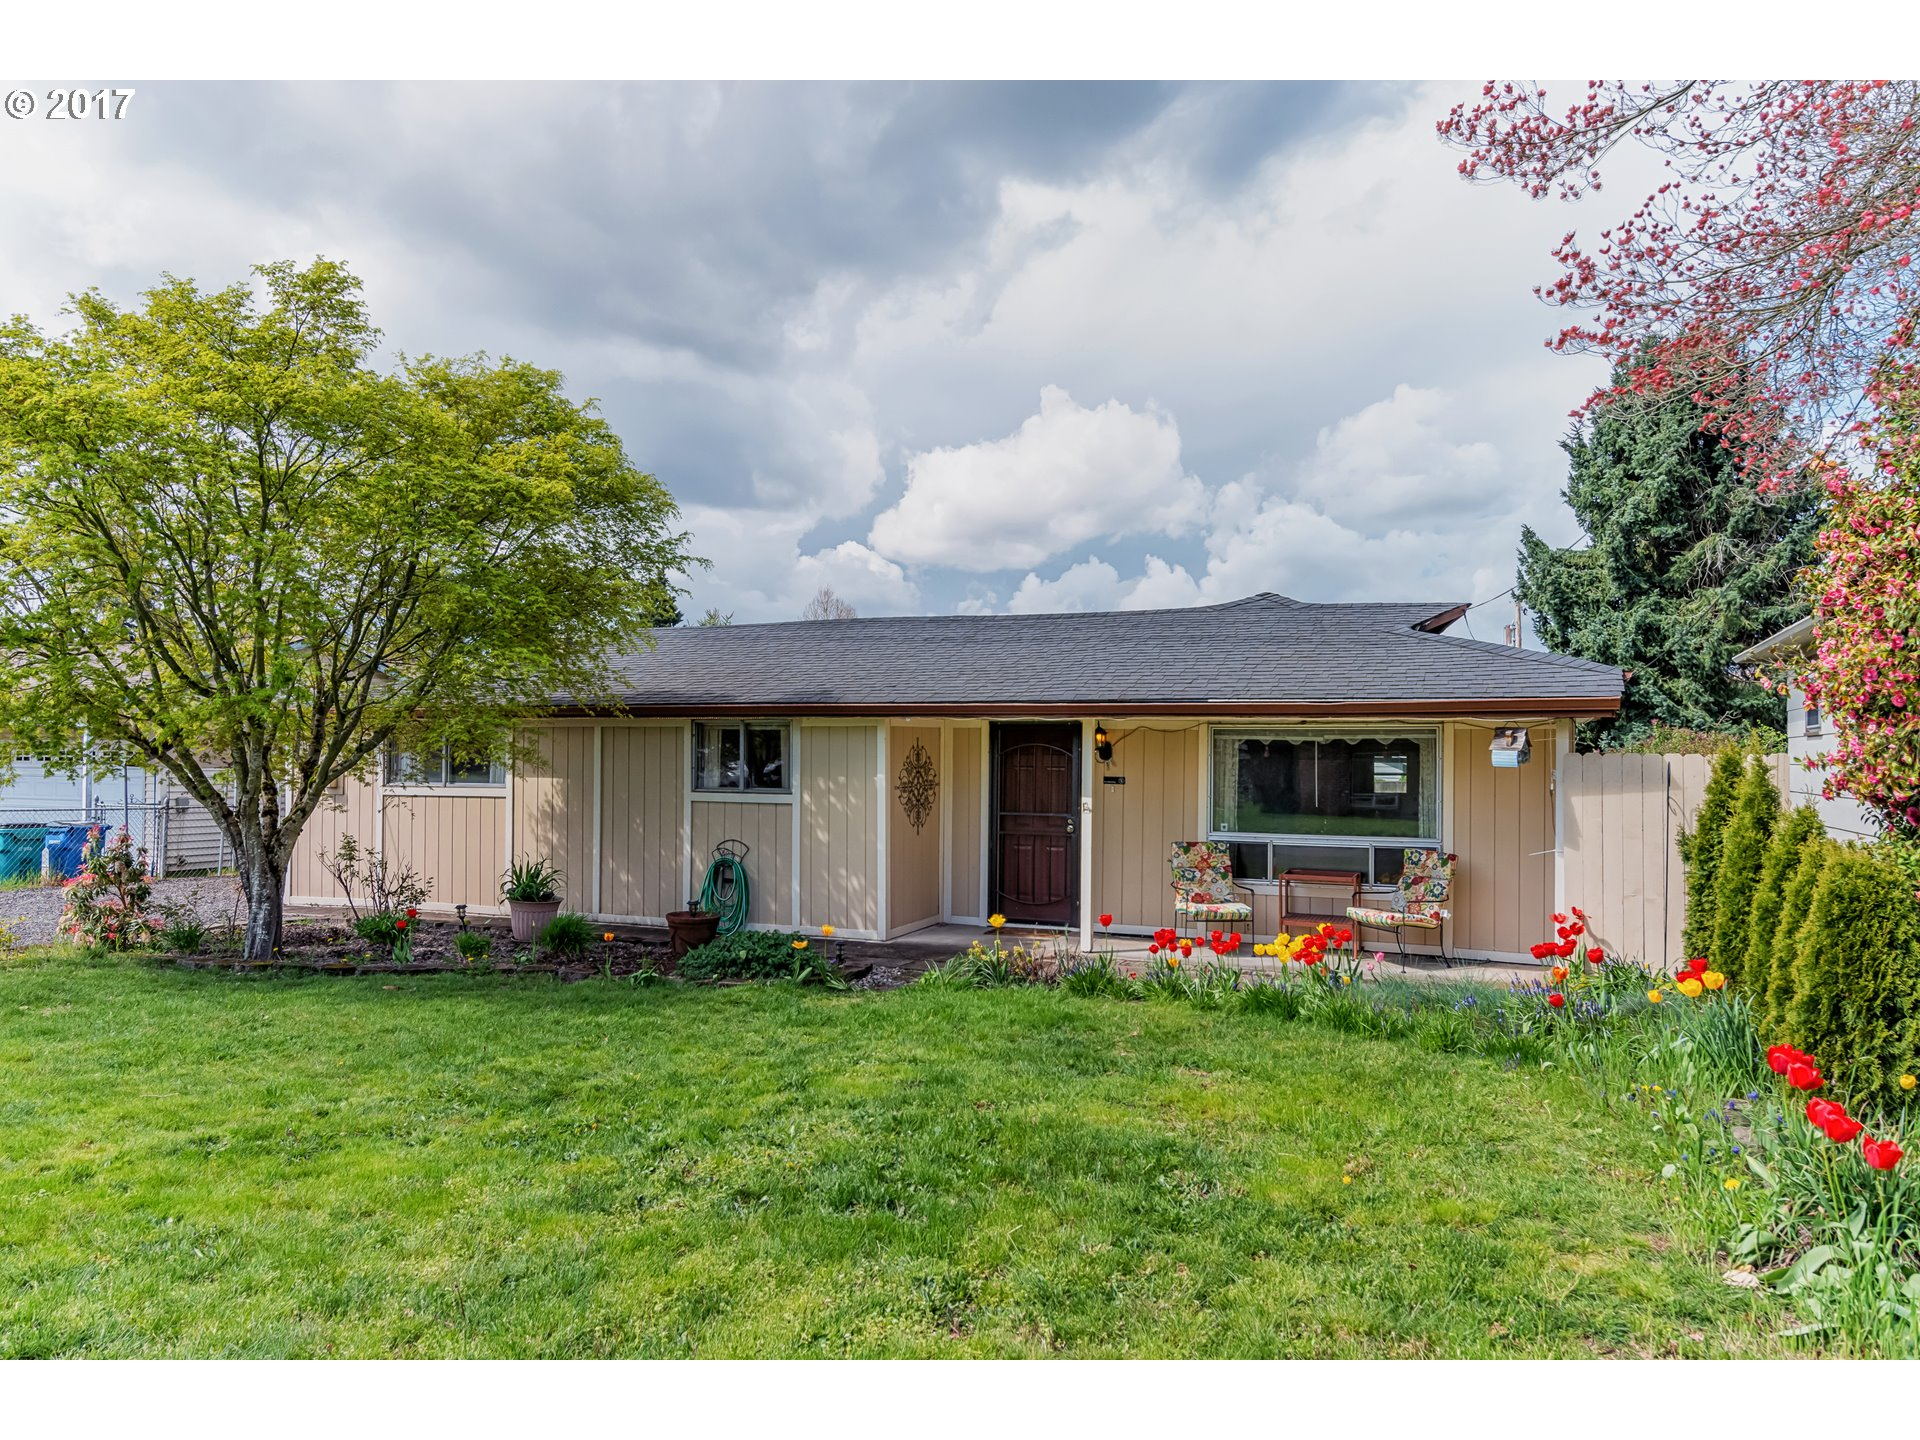 6500 NW 4TH AVE, Vancouver, WA 98665